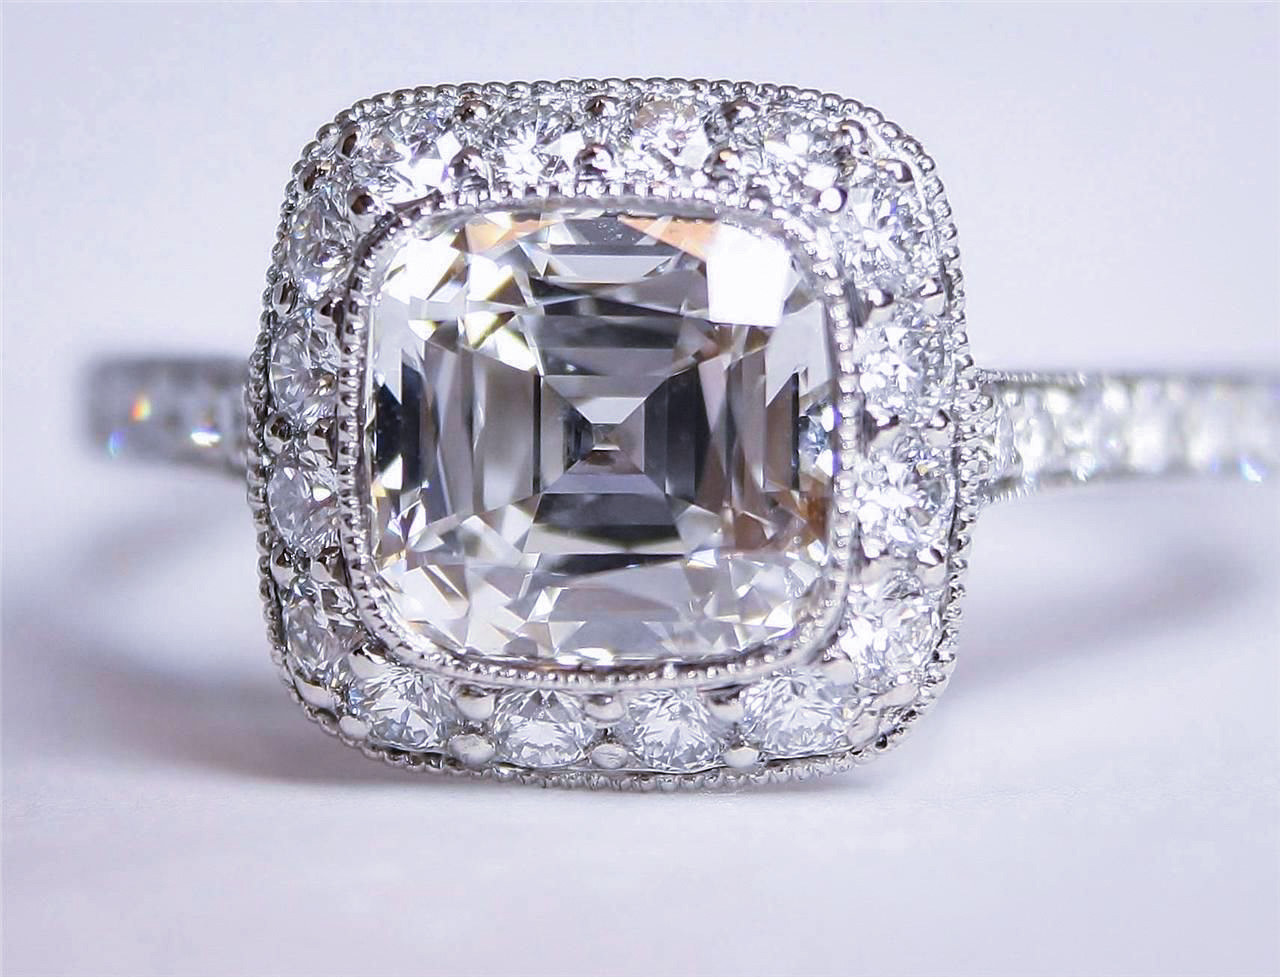 5 Carat Tiffany Diamond Ring